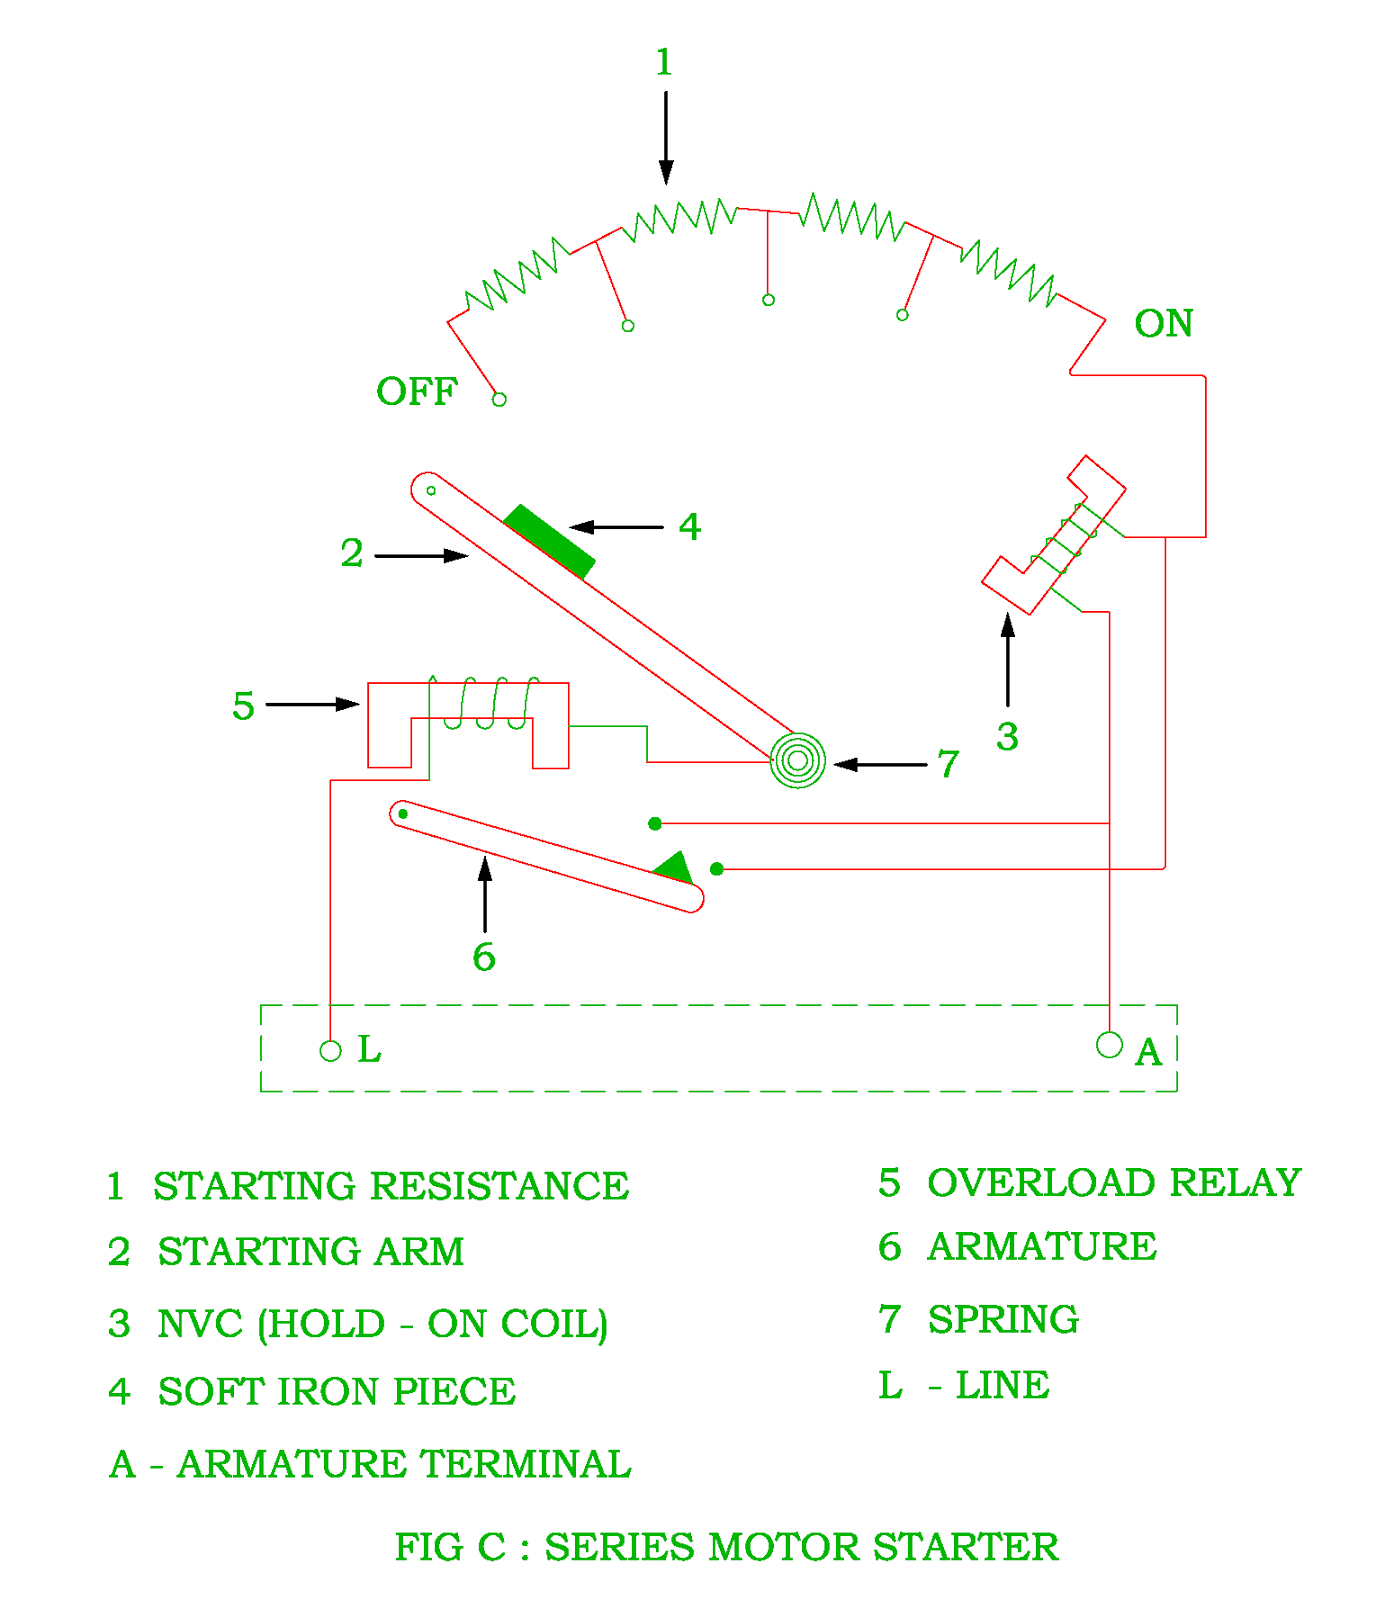 hight resolution of figure b shows a four point starter with internal wiring diagram of a long shunt compound motor